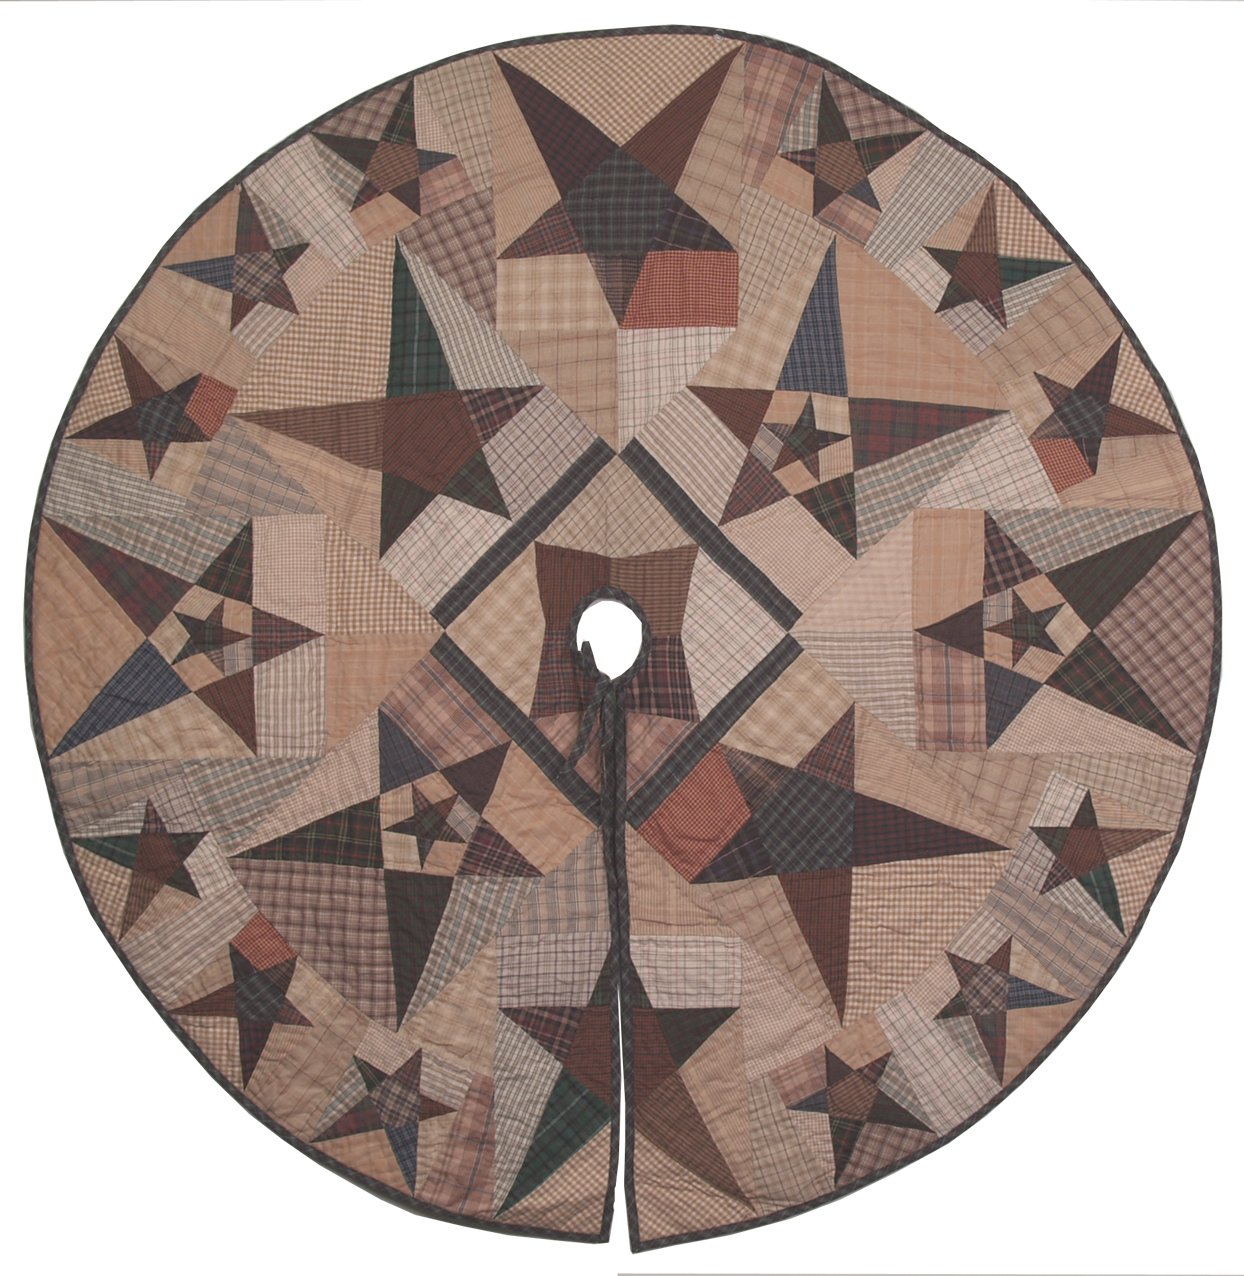 Primitive Star Quilted Christmas Tree Skirt 47 Inches Round 100% Cotton Handmade Hand Quilted Heirloom Quality